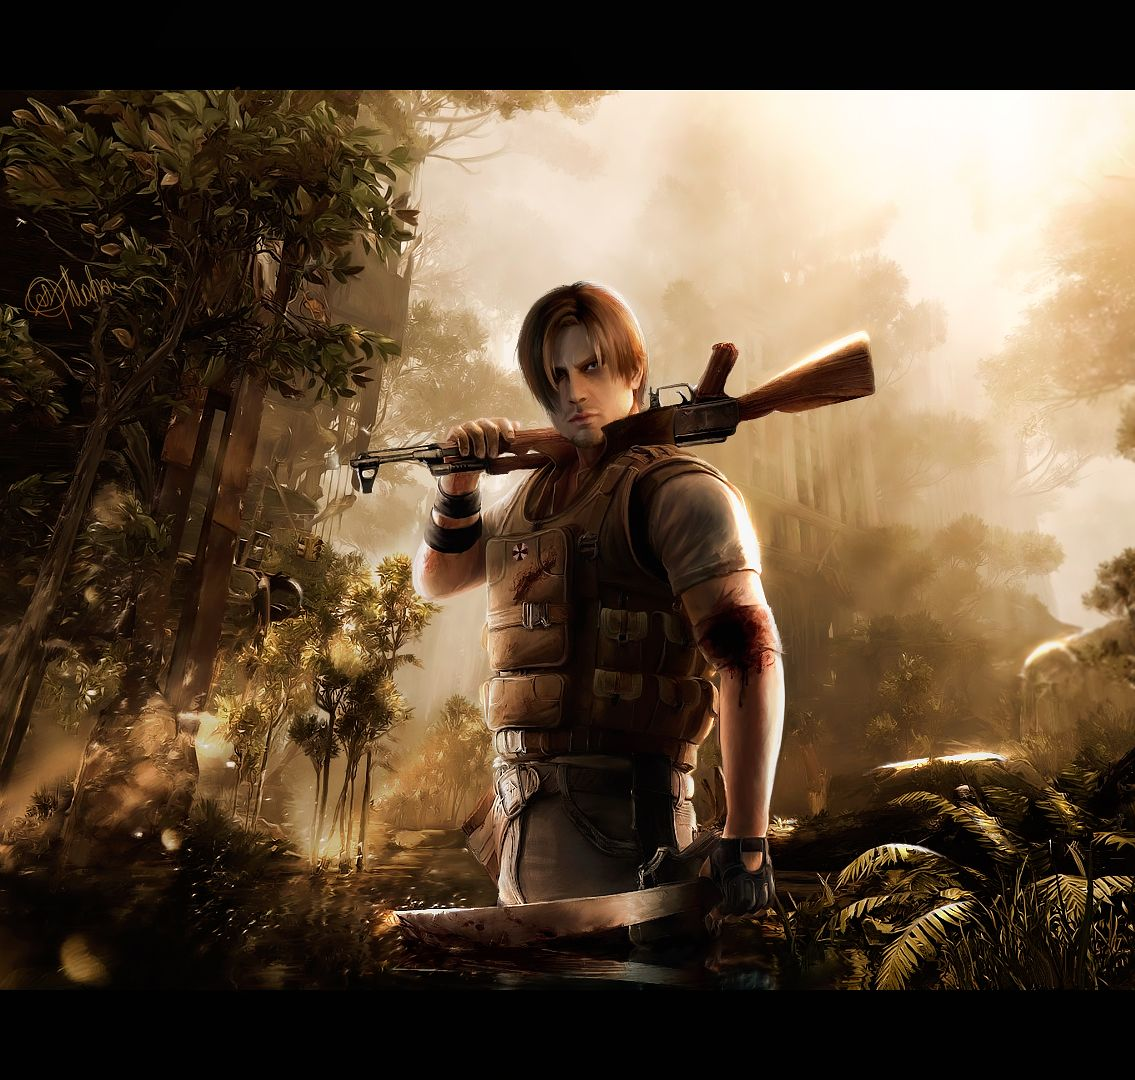 Resident Evil Hd Wallpaper: Resident Evil Images Drawing Art Of Leon Kennedy